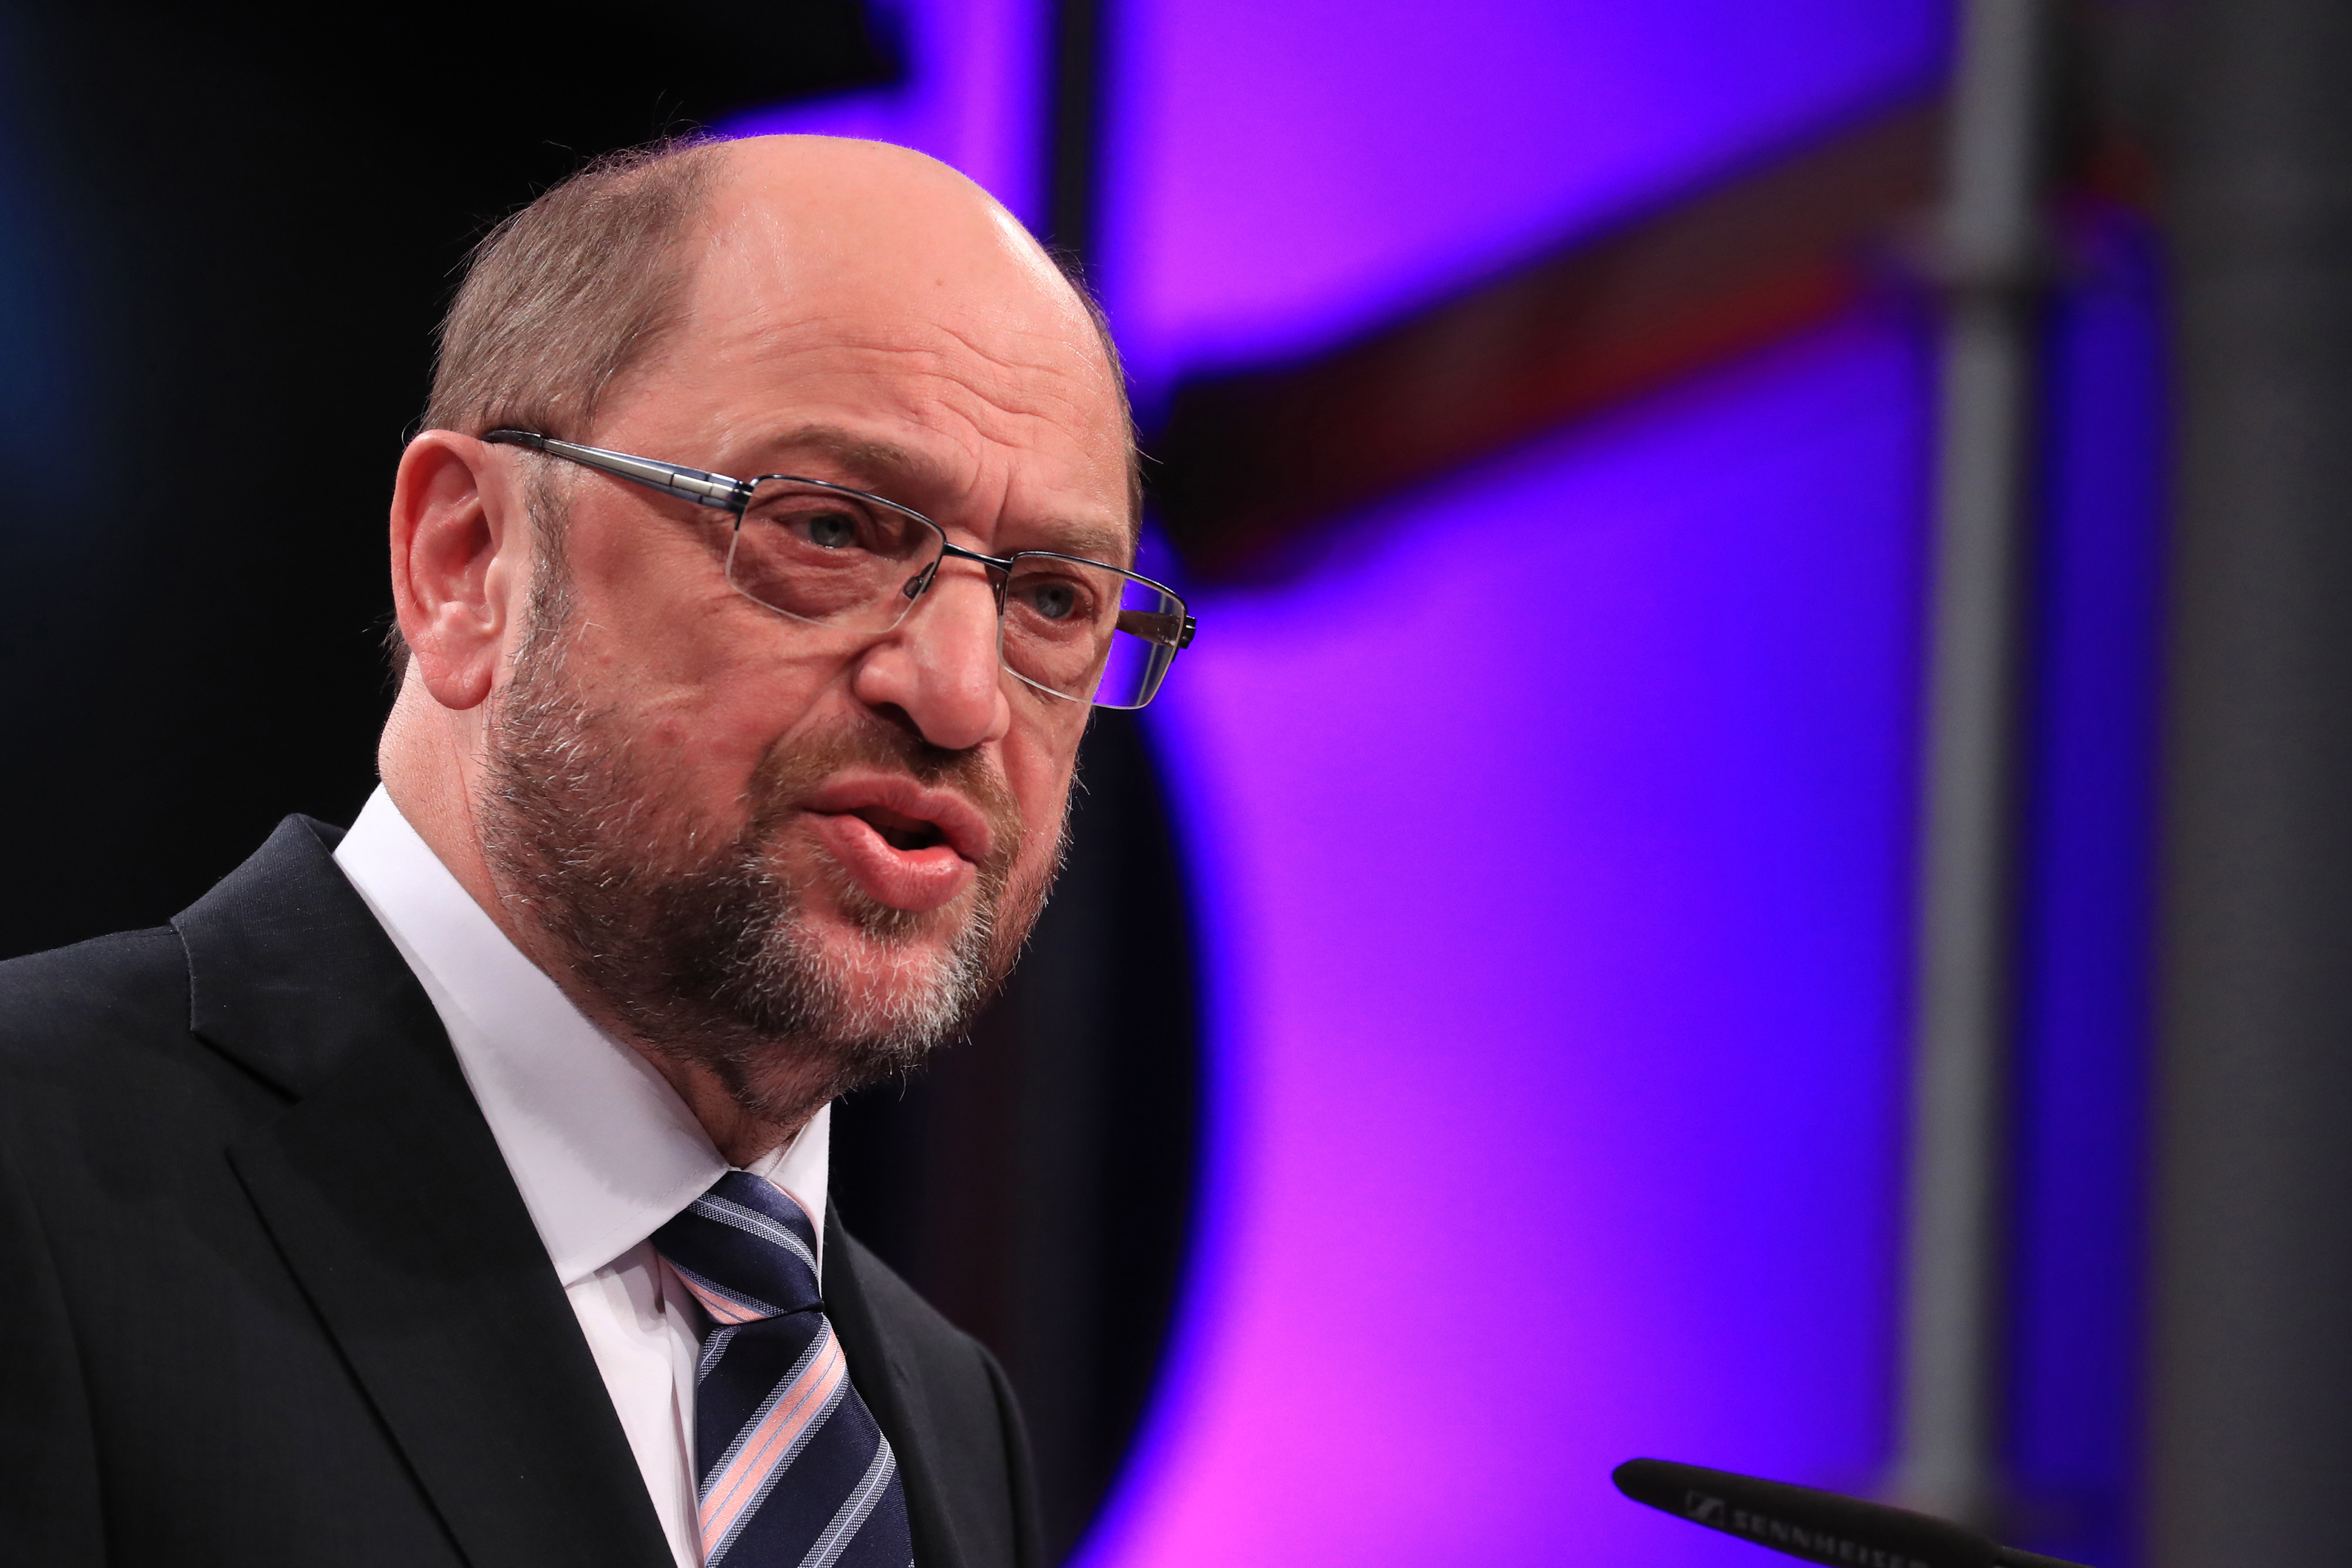 Martin Schulz, Social Democrat Party (SPD) candidate for German Chancellor, speaks during a SPD labour conference in Bielefeld, Germany, on Feb. 20, 2017. MUST CREDIT: Bloomberg photo by Krisztian Bocsi.